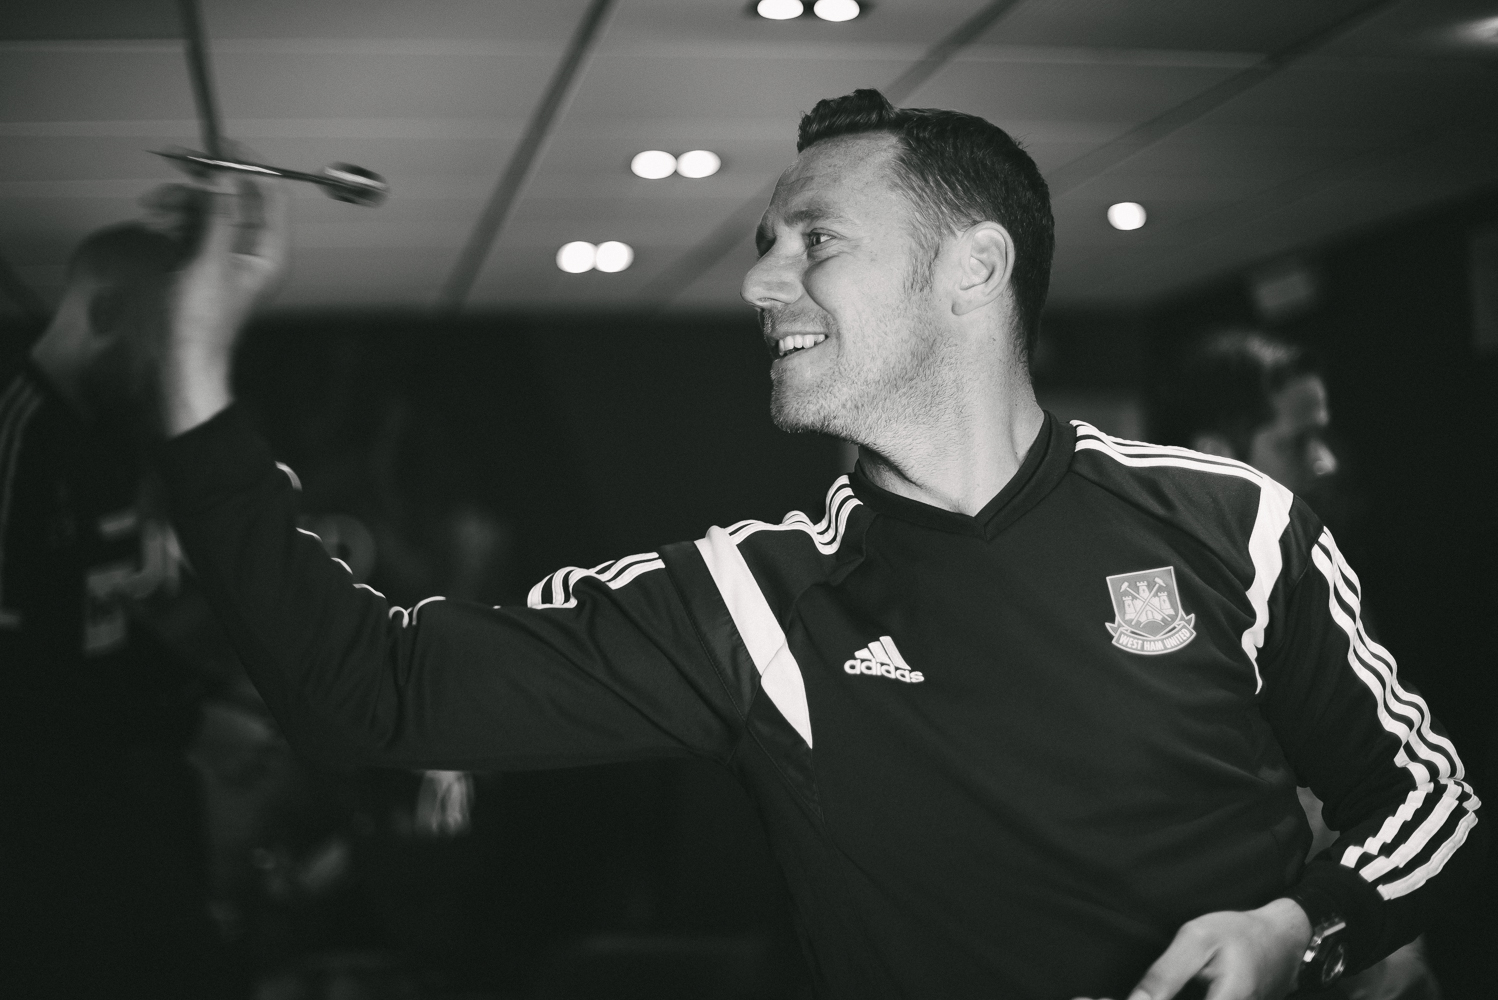 Betway_WestHam_Alex_Wallace_Photography_0133.jpg